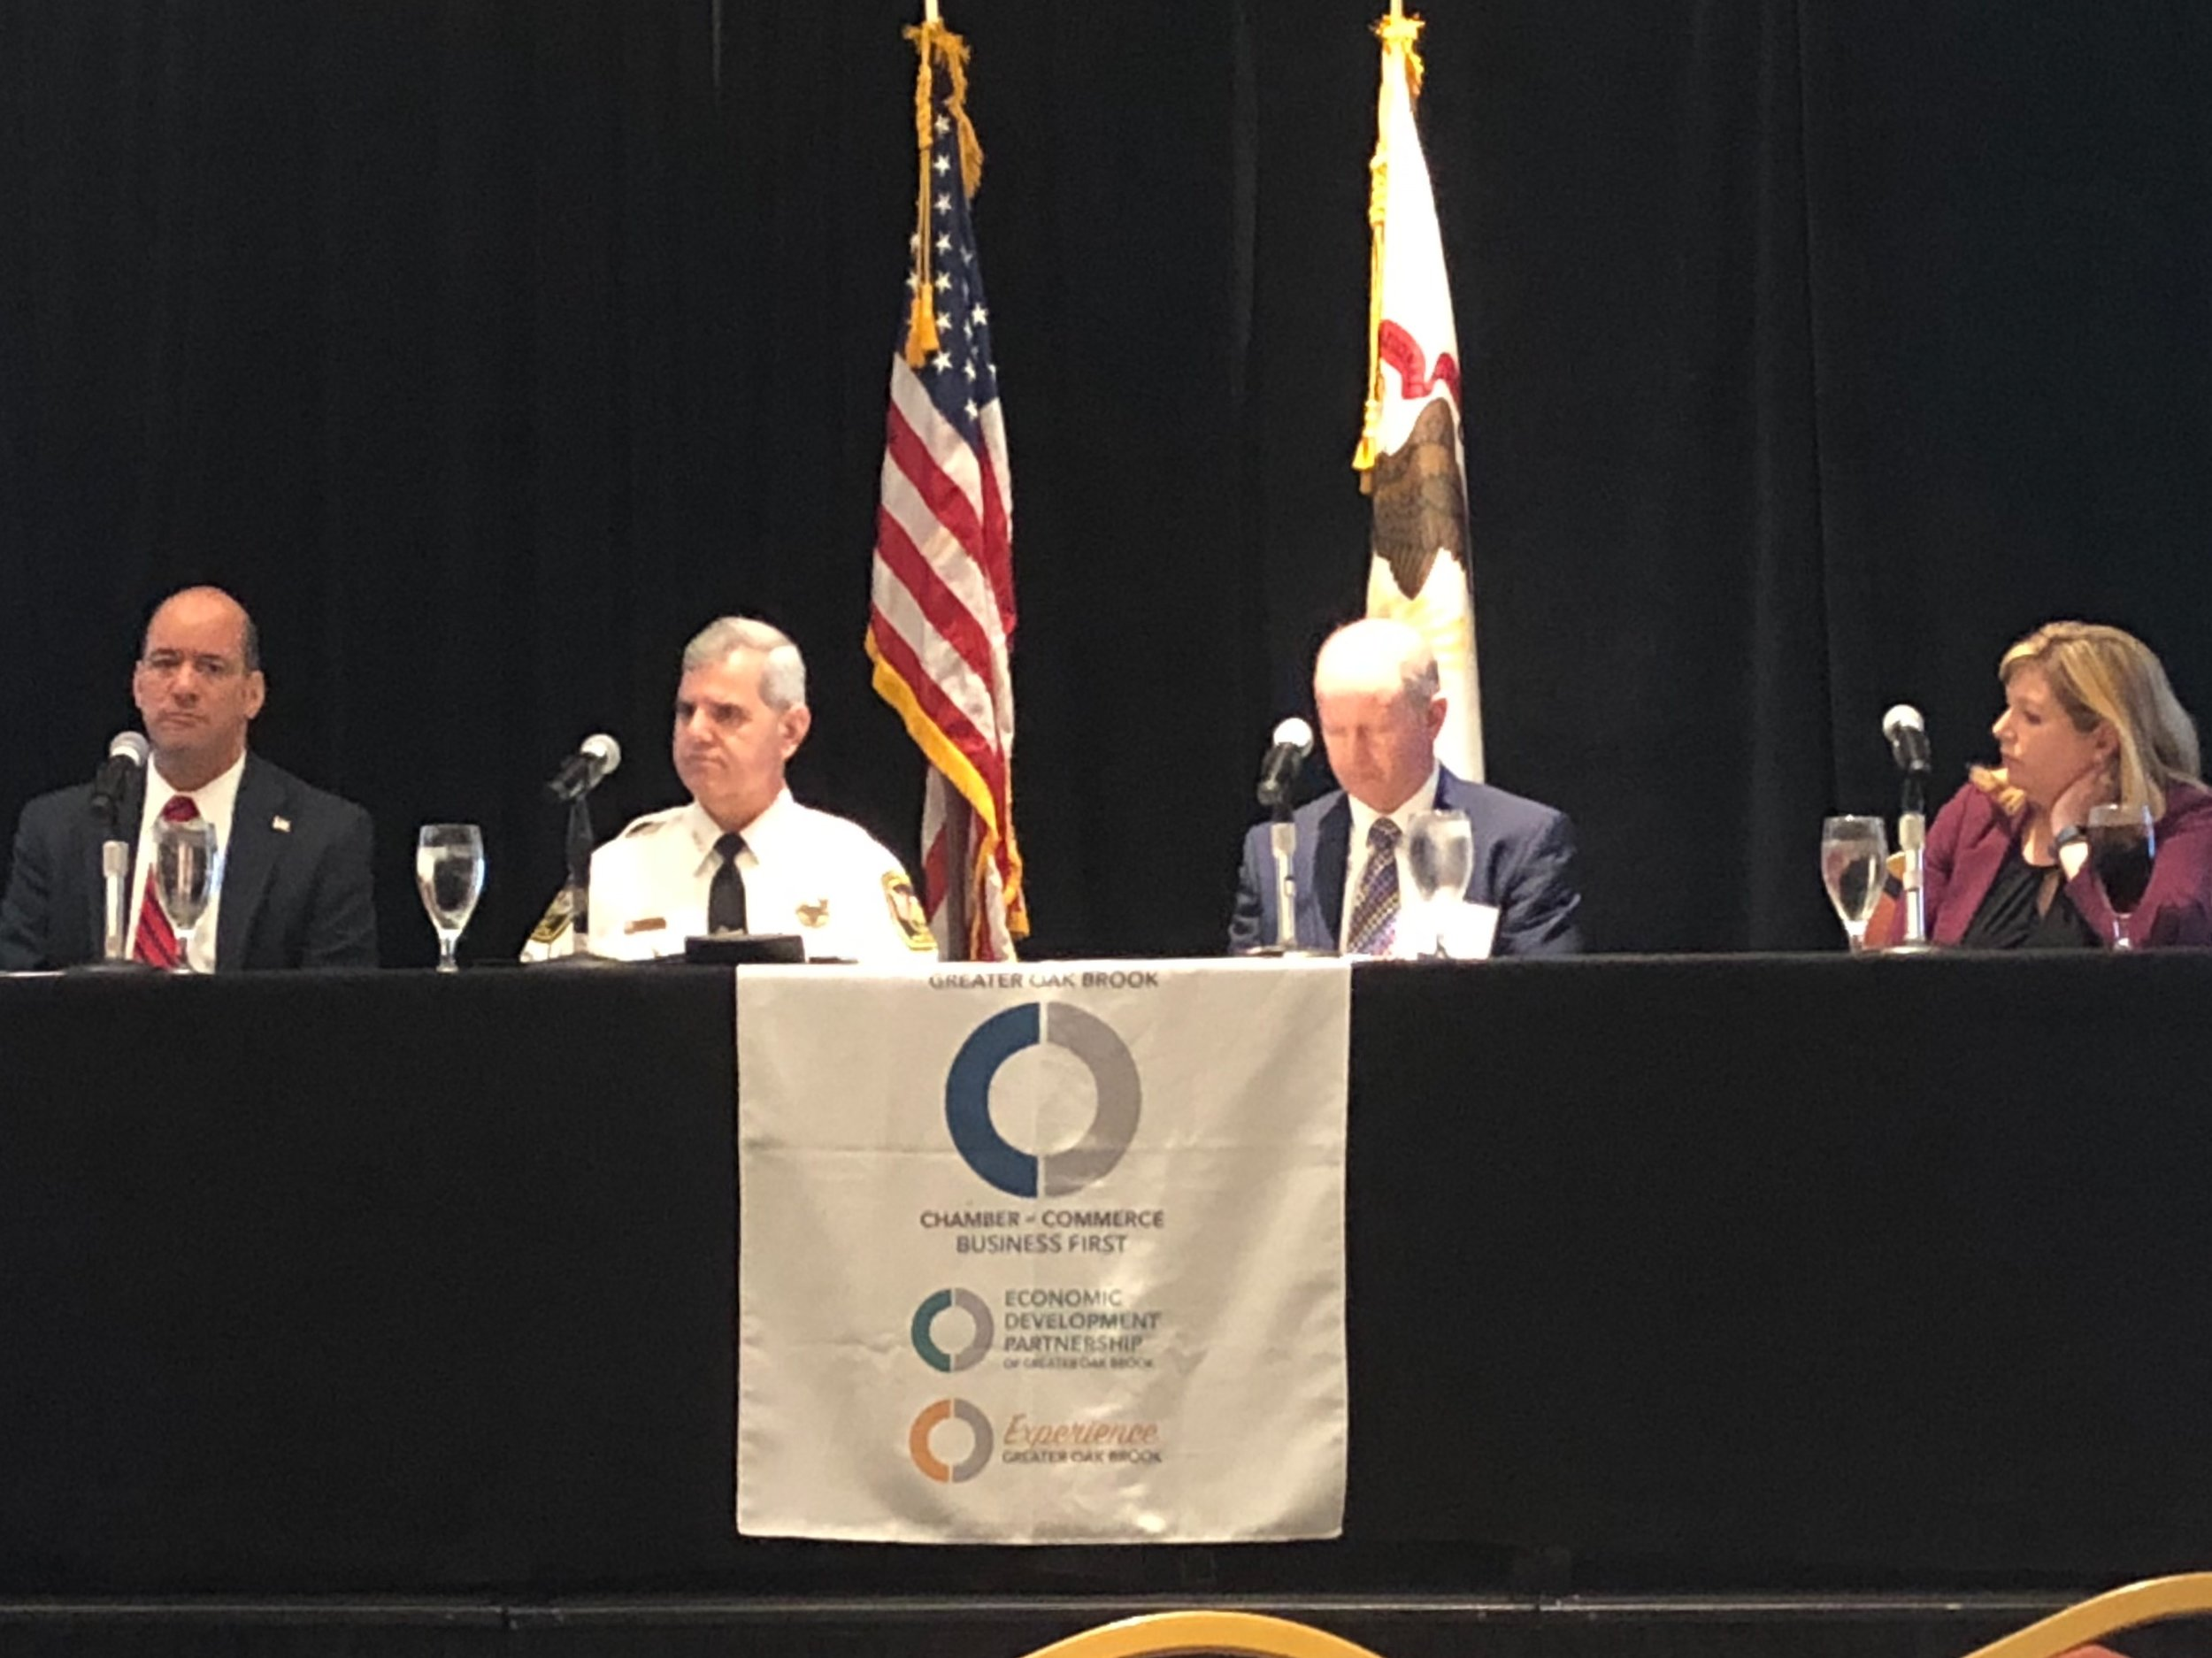 The forum speakers (L-R): DuPage County State's Attorney Bob Berlin, Oak Brook Police Chief James Kruger, Serve and Protect's Joe Crimmins, and Inland Bank's Nora O'Connor.